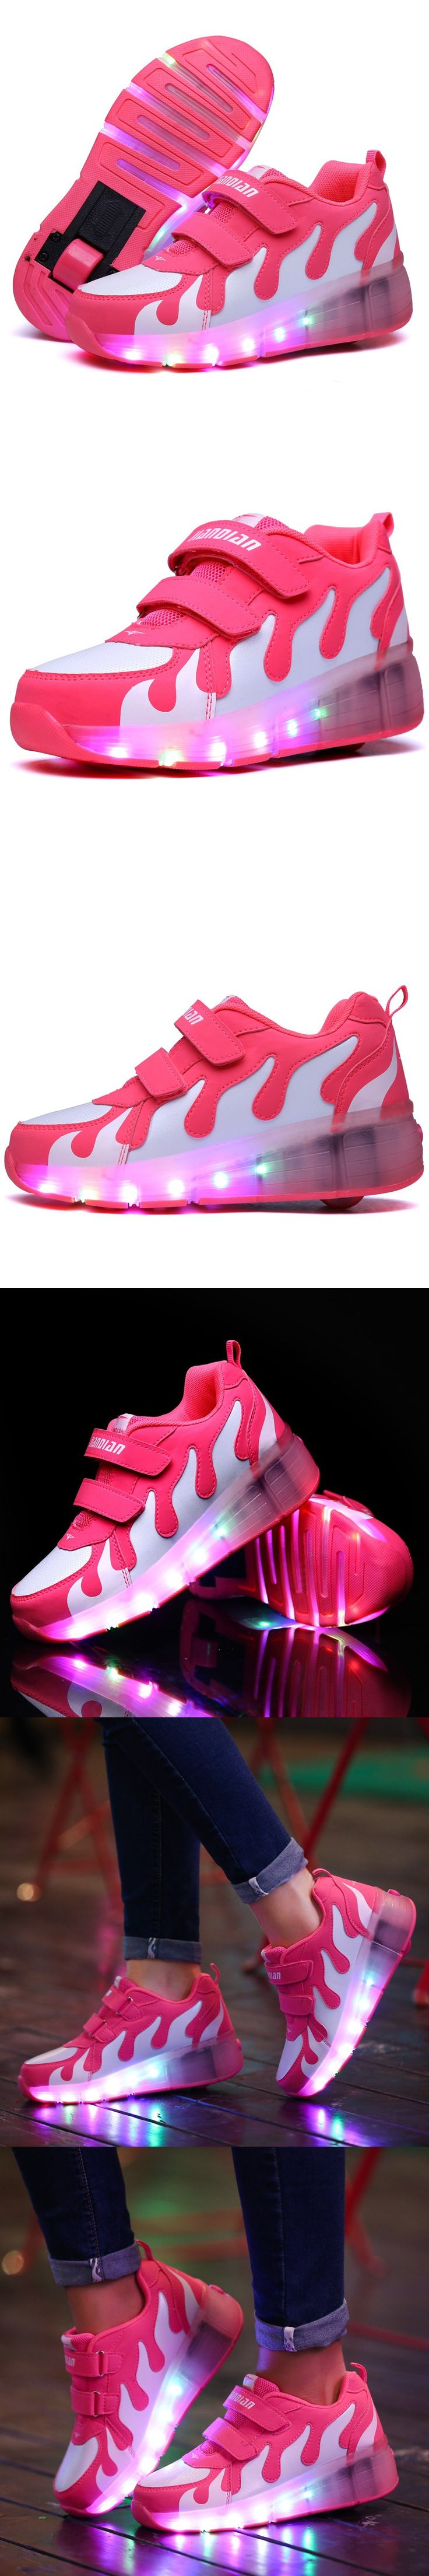 Children wheely Rolle Led Lights Kids Shoes With Wheels Wear-resistant for girls boys Sneakers Zapatillas Con Ruedas CY1637 $44.05